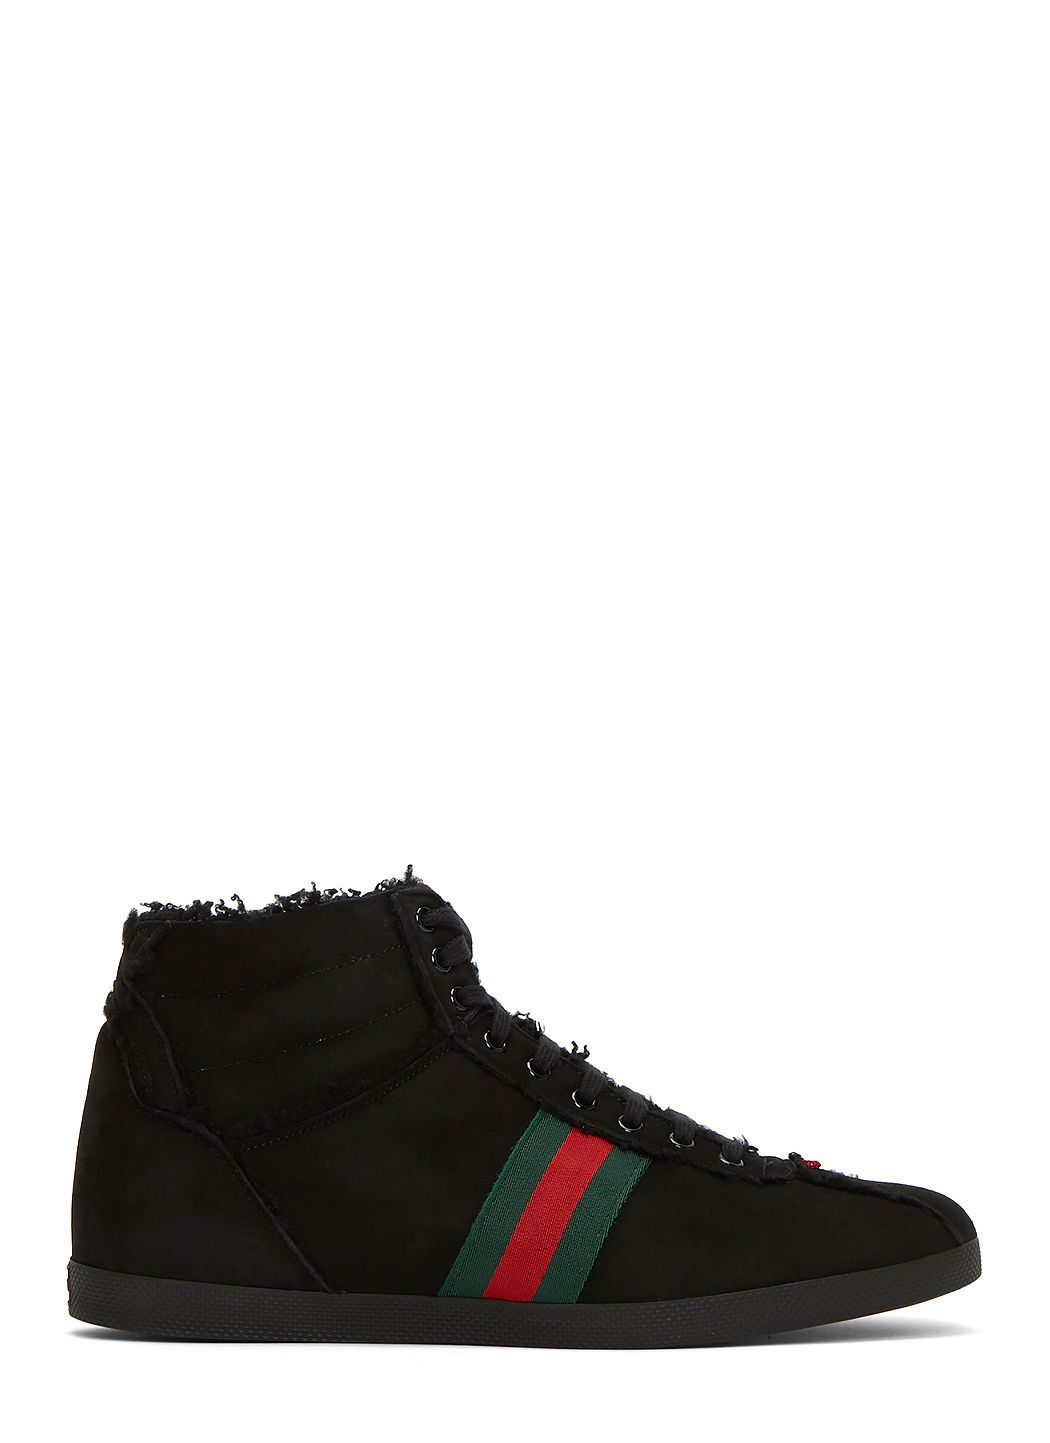 243c330cfff GUCCI Men s Shearling High-Top Suede Sneakers in Black.  gucci  shoes